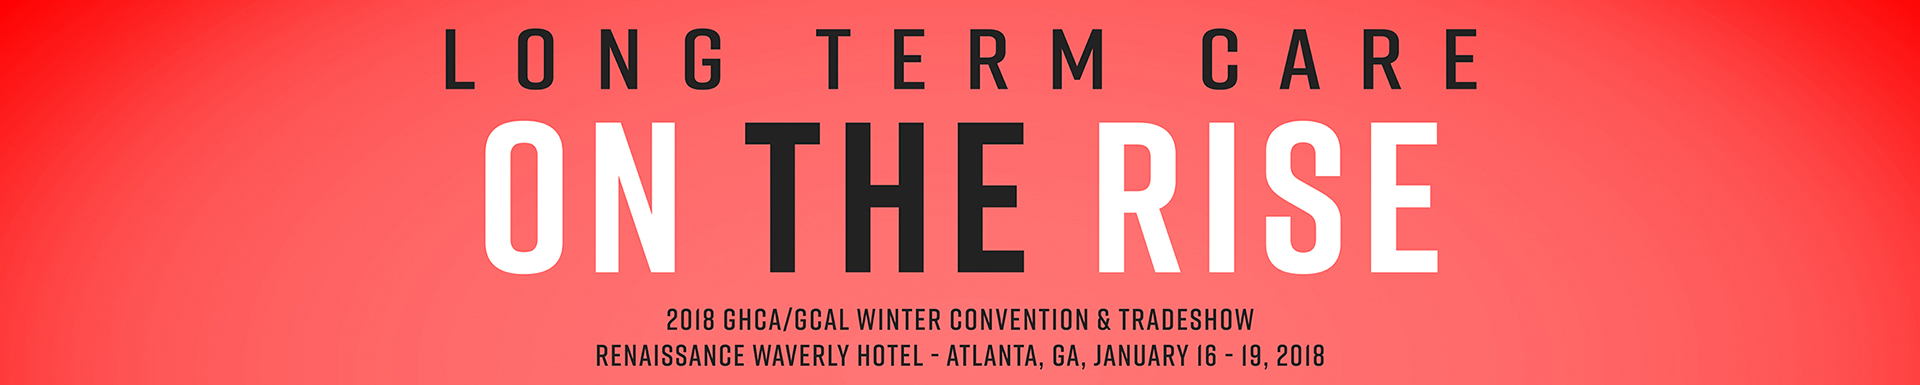 2018 GHCA/GCAL Winter Convention and Trade Show